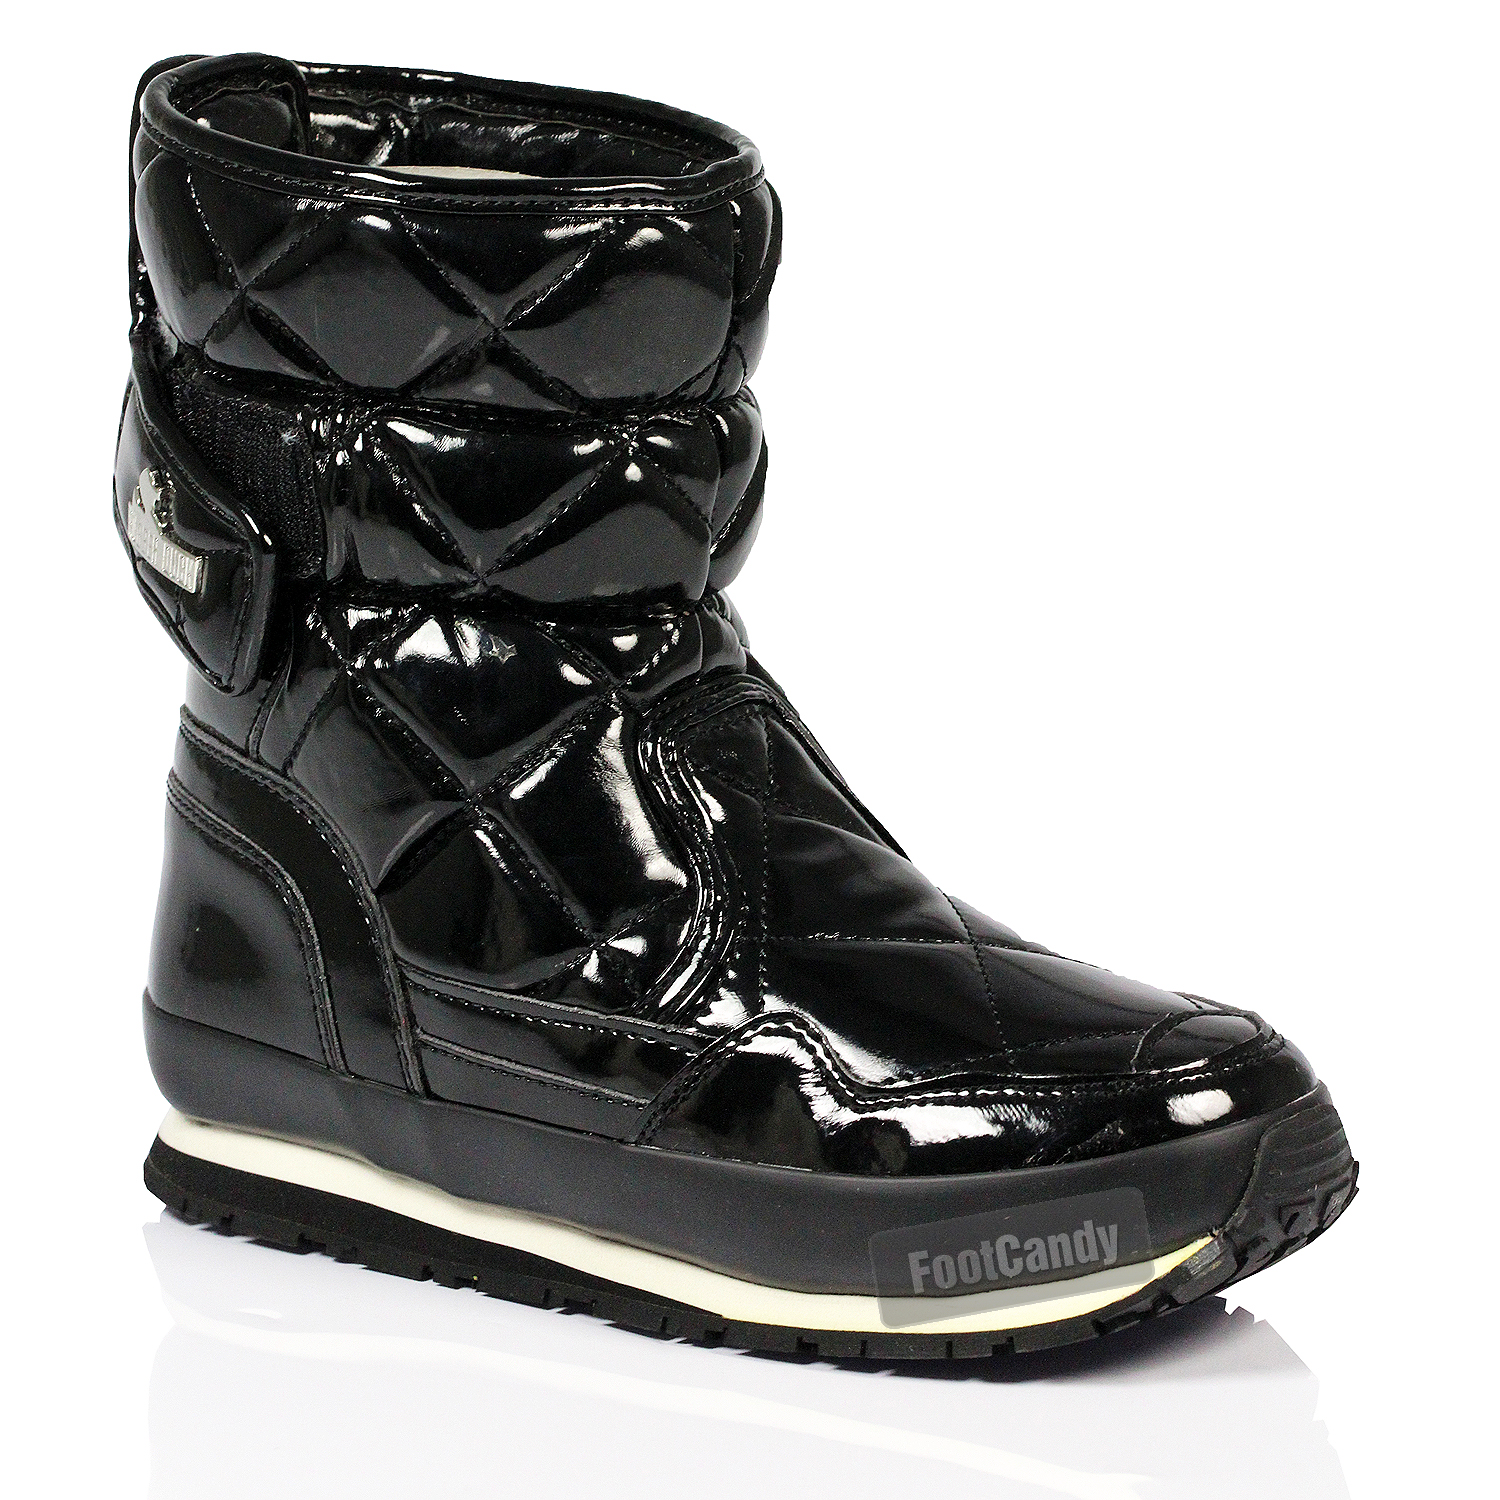 Lastest A Pair Of Burberry Windmere Duck Boots These Womens Boots Are Black In Color And Feature A Lace Up Design With Buckle Accents, Gold Tone Hardware, And The Classic Burberry Check Print Pattern To The Interior Trim The Burberry